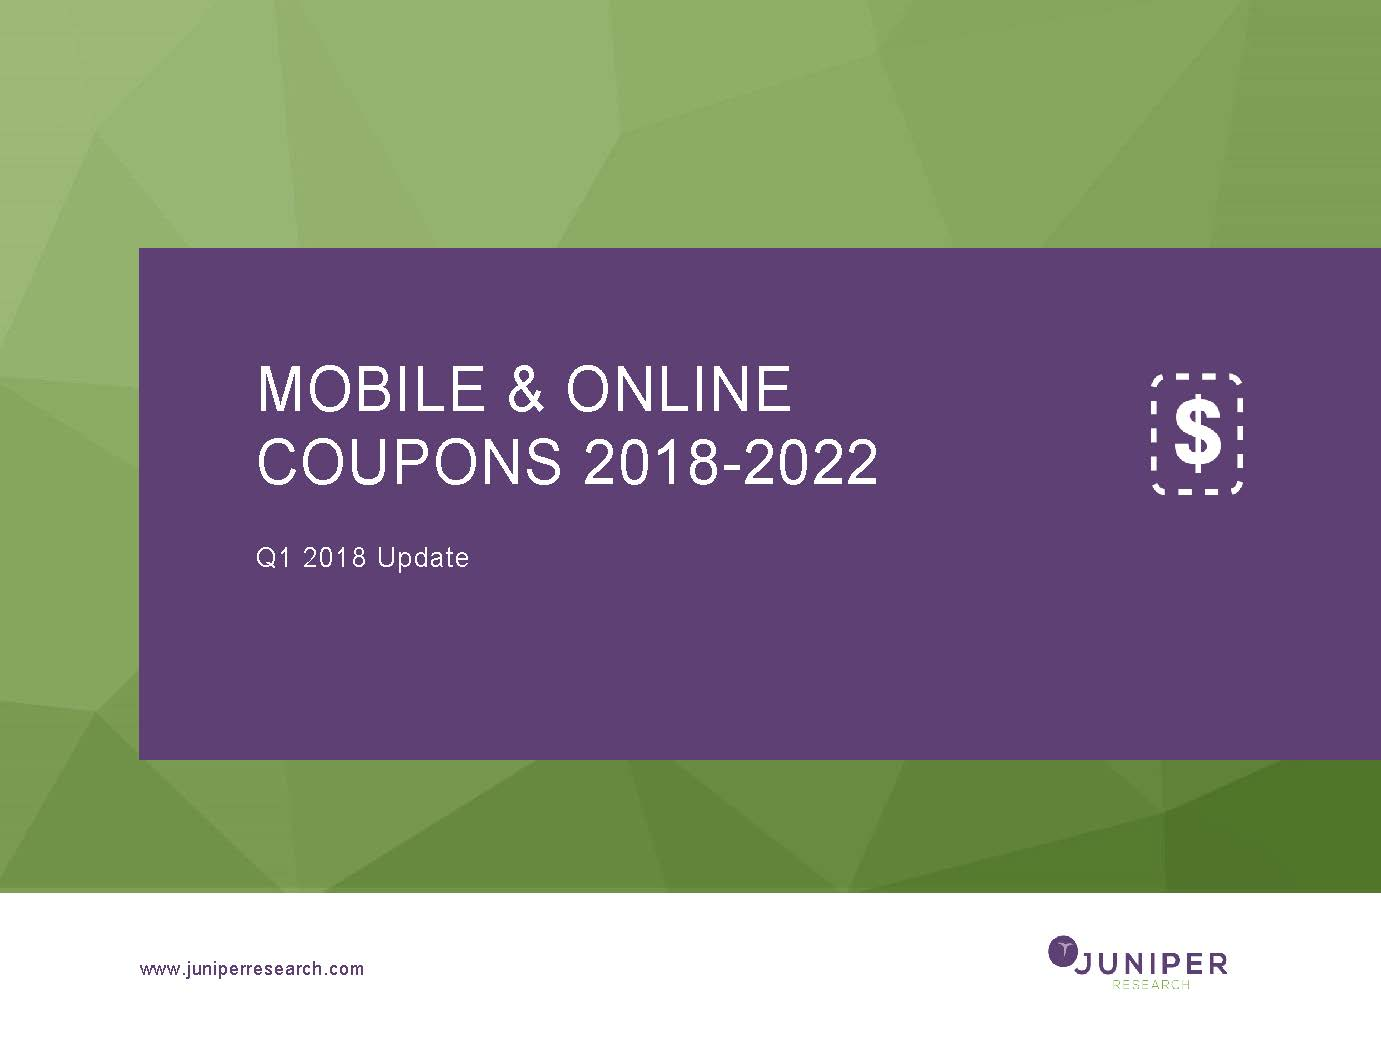 Mobile & Online Coupons - Q1 2018